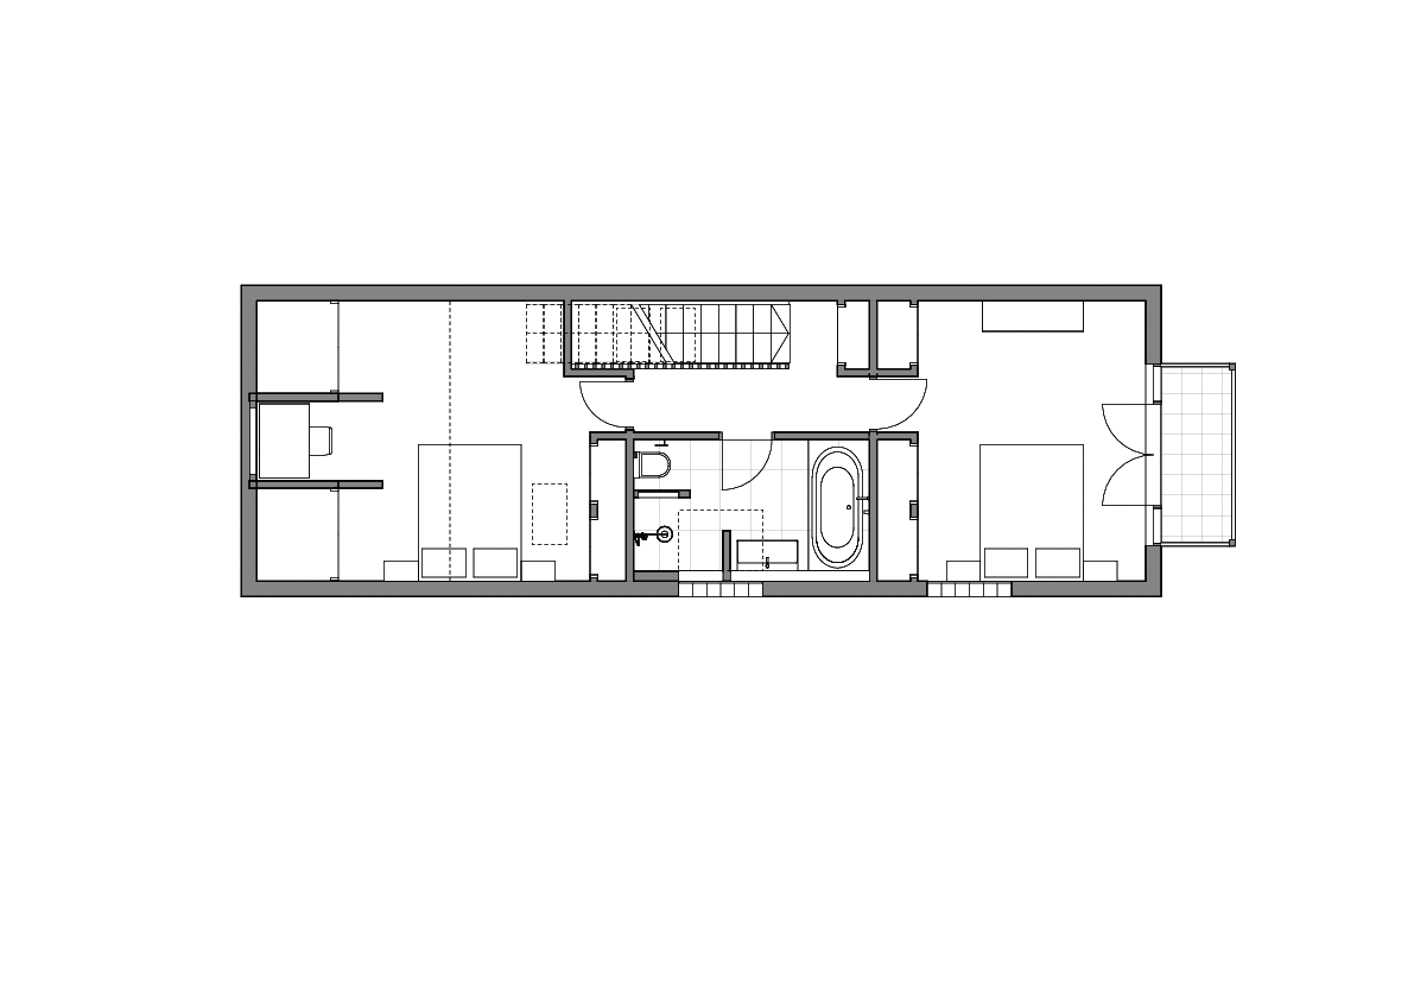 seven-seat-house-kitty-lee-architecture-the-design-emotive-17.jpg